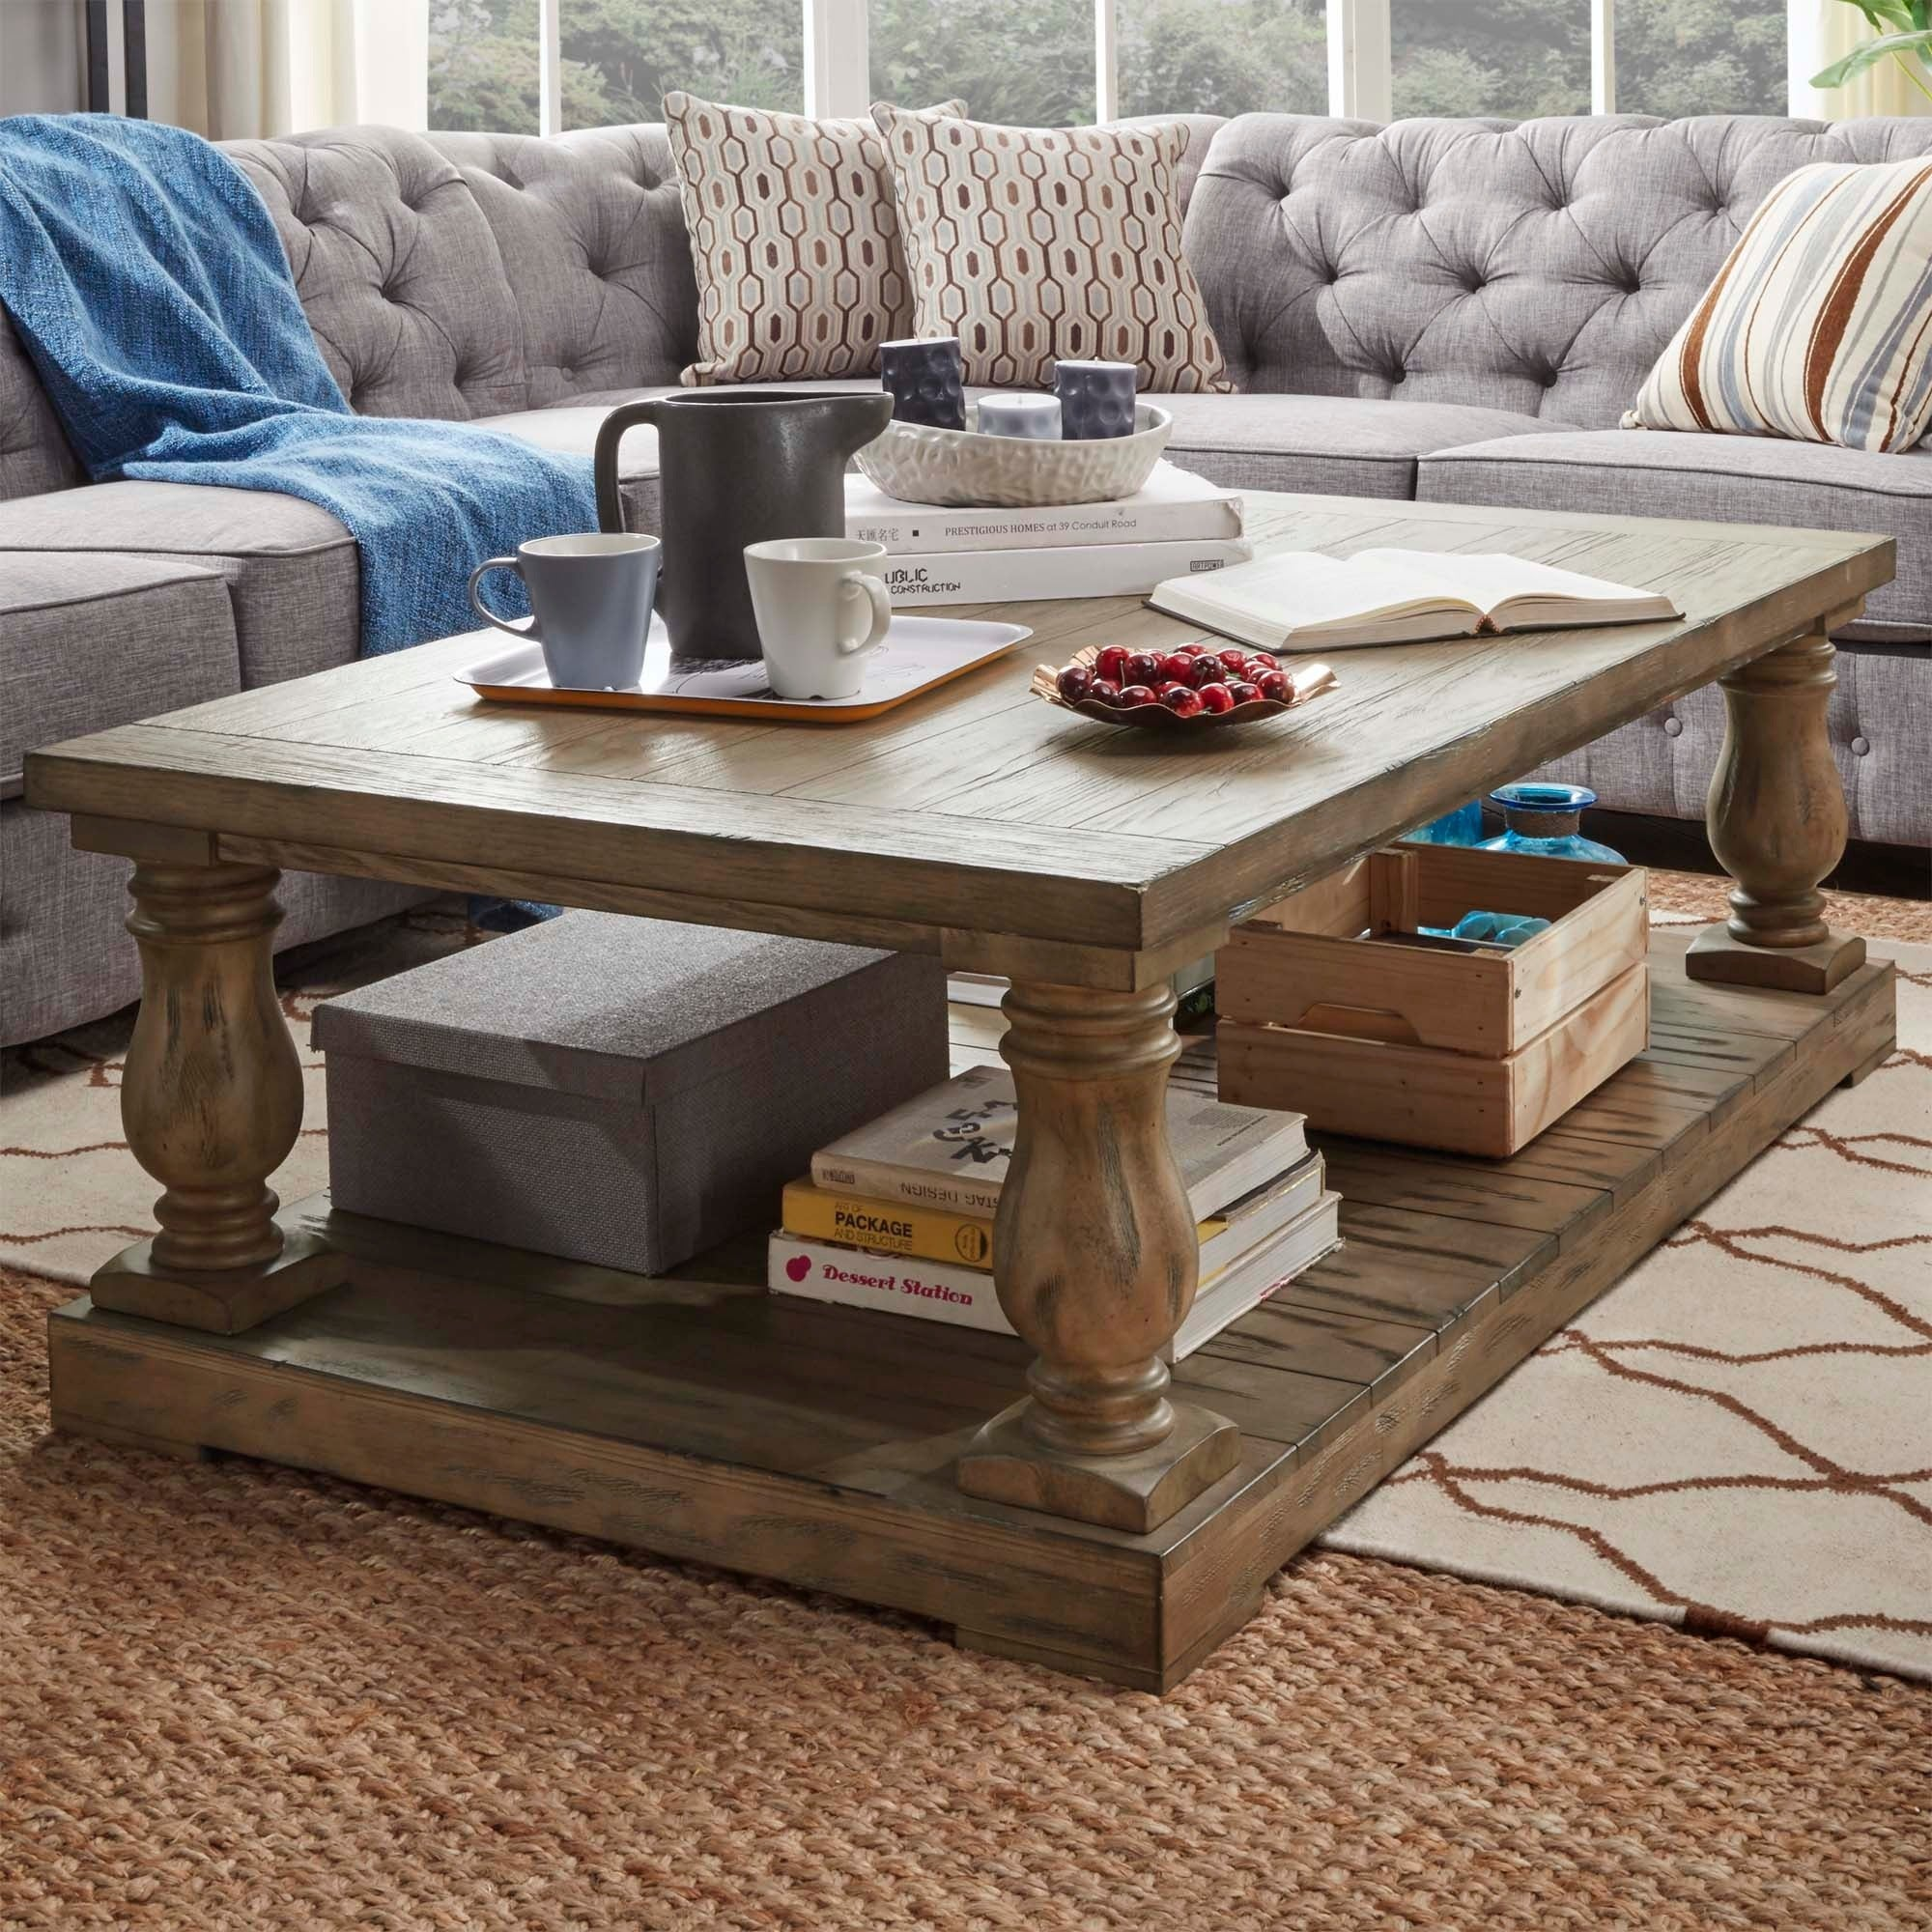 Edmaire Rustic Pine Baluster 55 inch Coffee Table by iNSPIRE Q